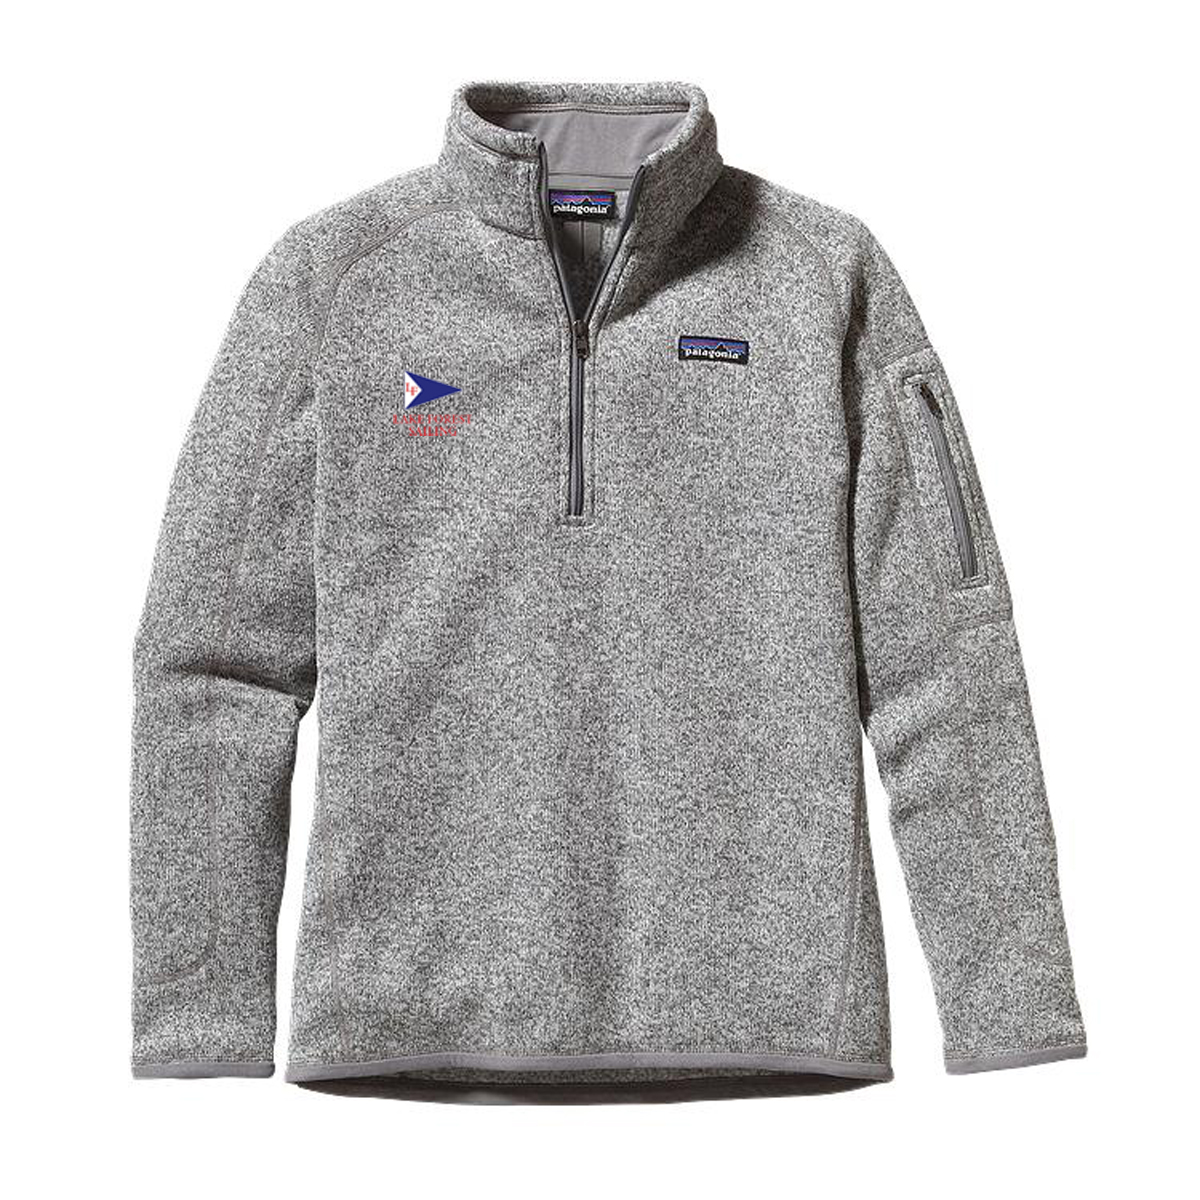 LAKE FOREST SAILING W'S PATAGONIA BETTER SWEATER 1/4 ZIP